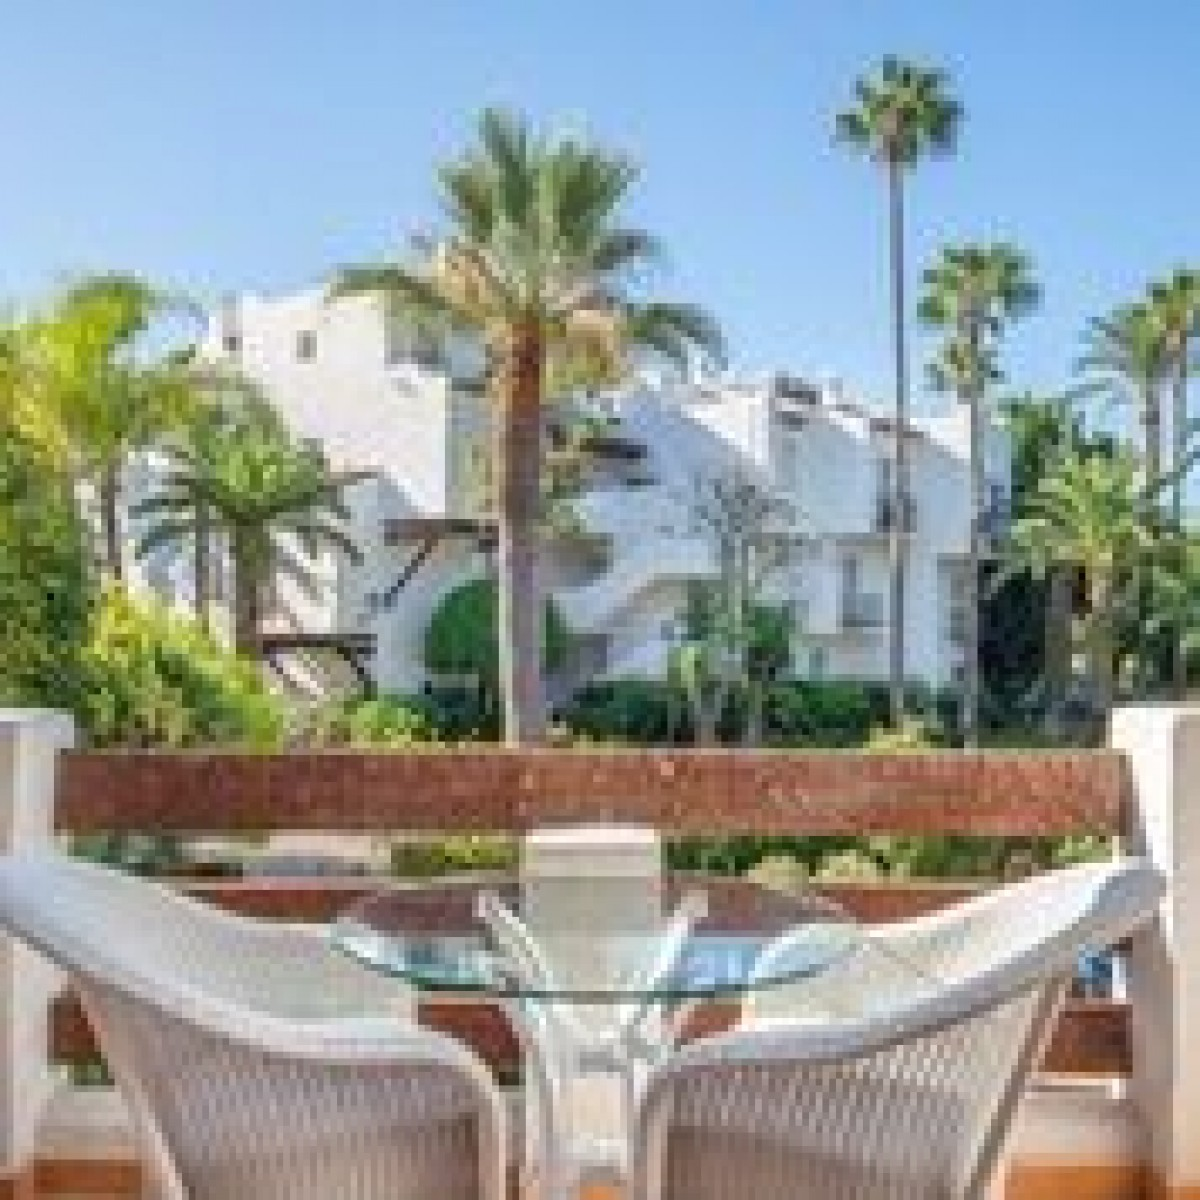 Stunning 3 bedroom apartment for sale in Estepona Playa, Marbella.